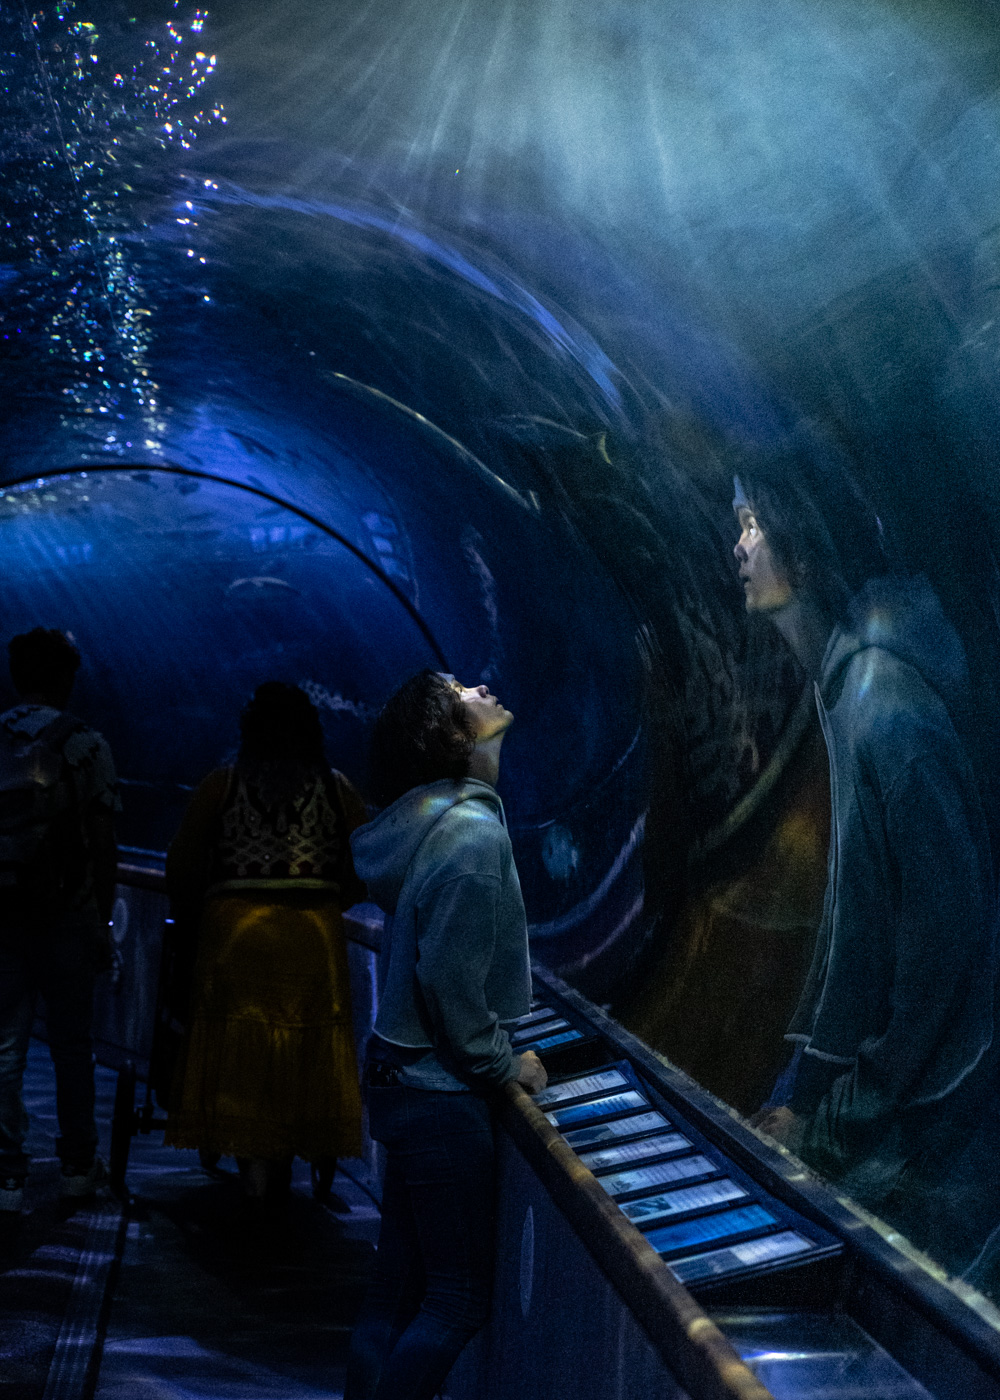 A young person looks up at a fish in the tunnels of the Aquarium of the Bay at Fisherman's Wharf in San Francisco, CA